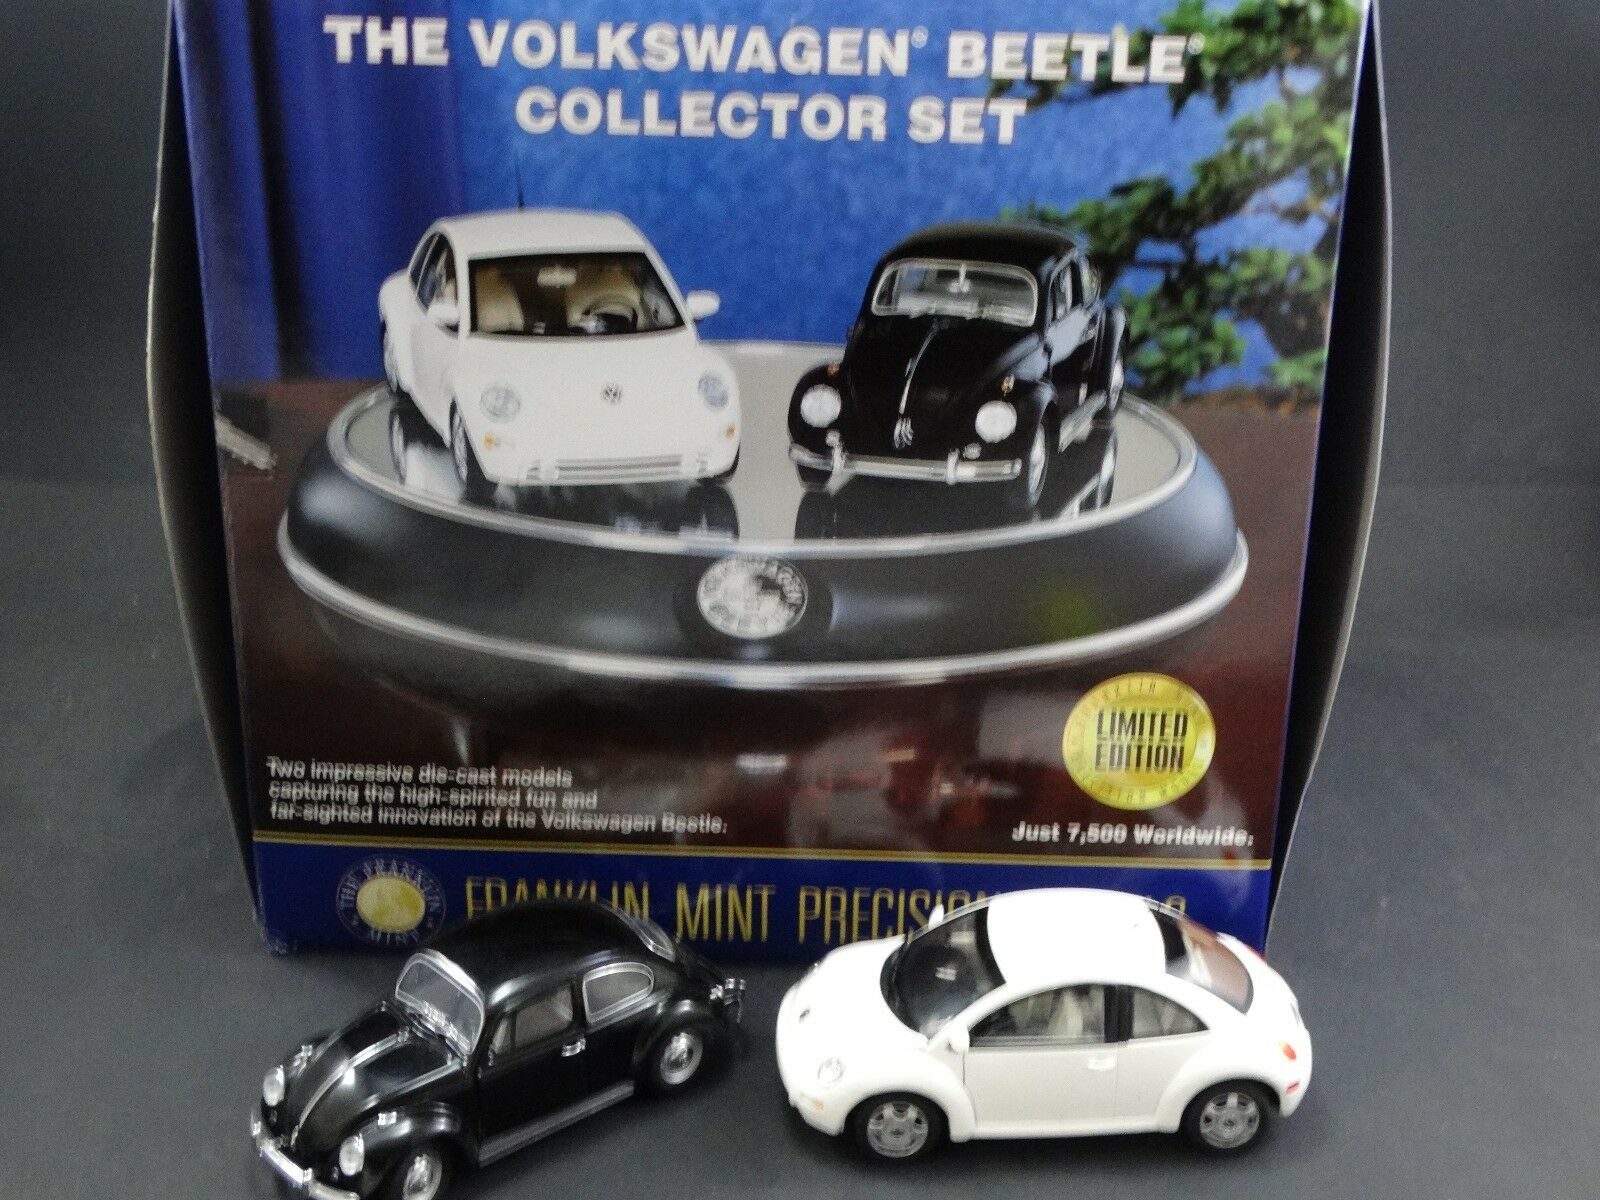 Franklin Mint 1967 1998 Volkswagen Beetle Collector Set 1 24 Diecast Modell Autos